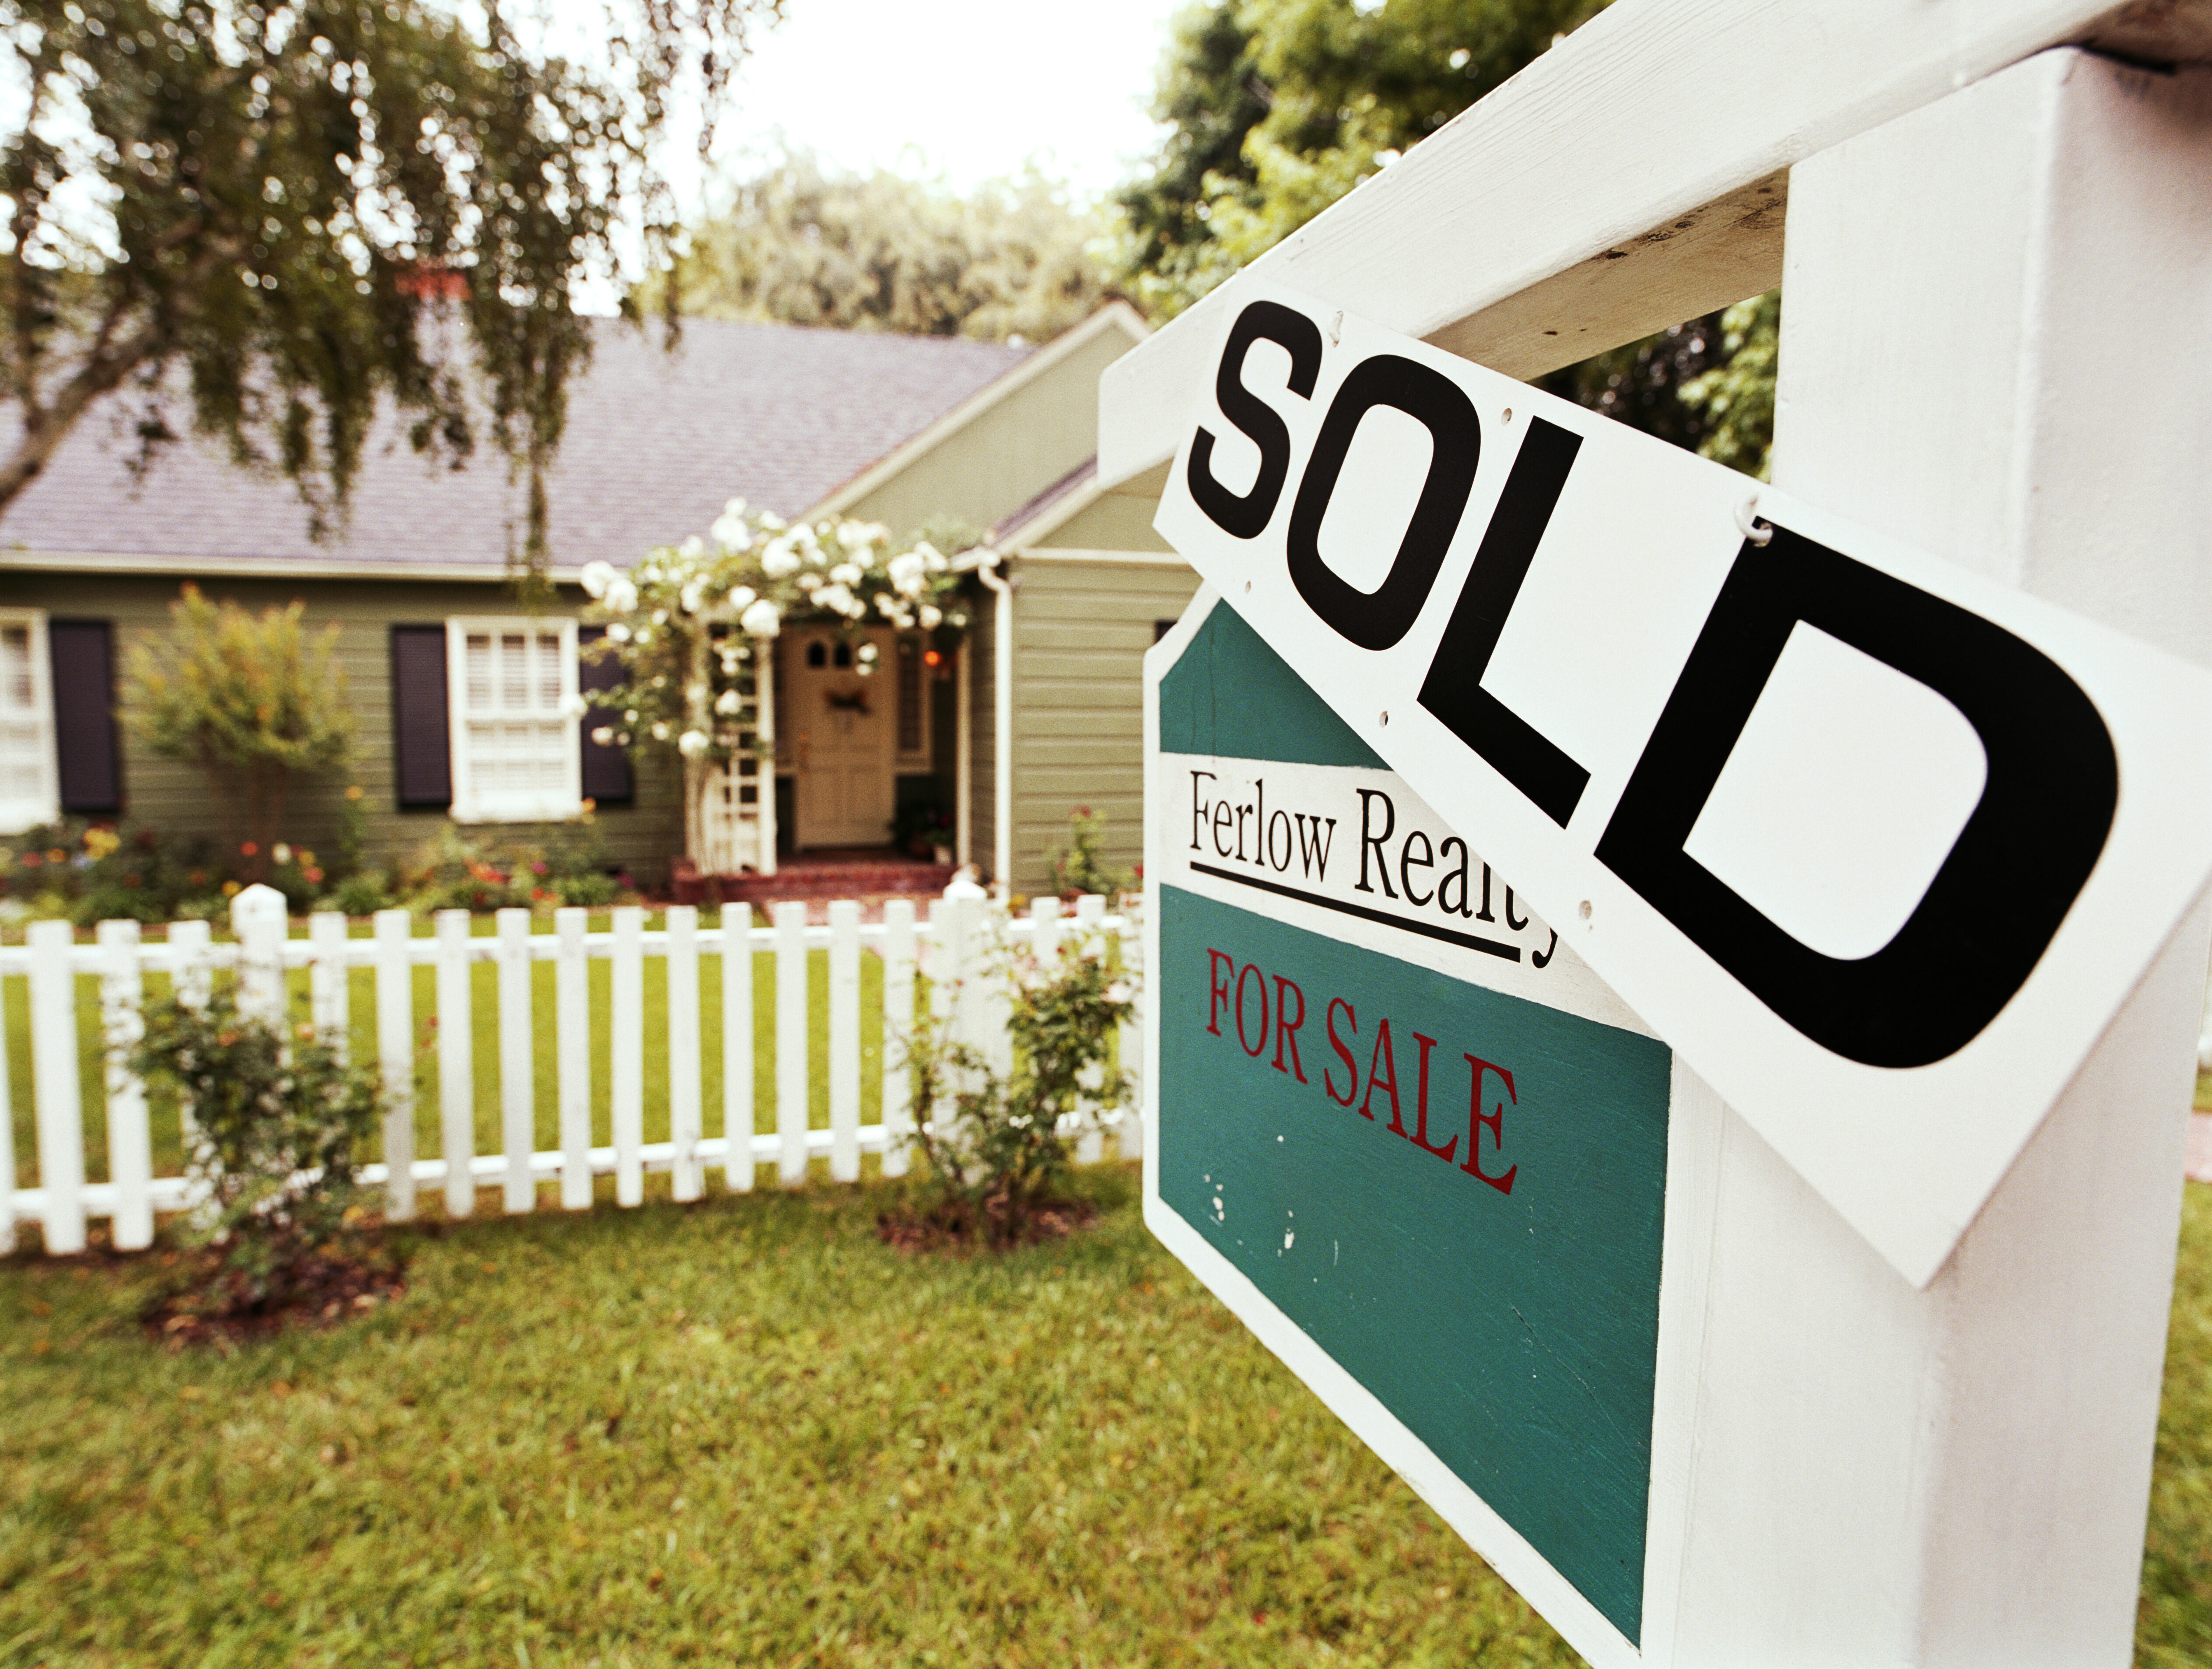 <p>Google has info on buying a home.&nbsp;</p>